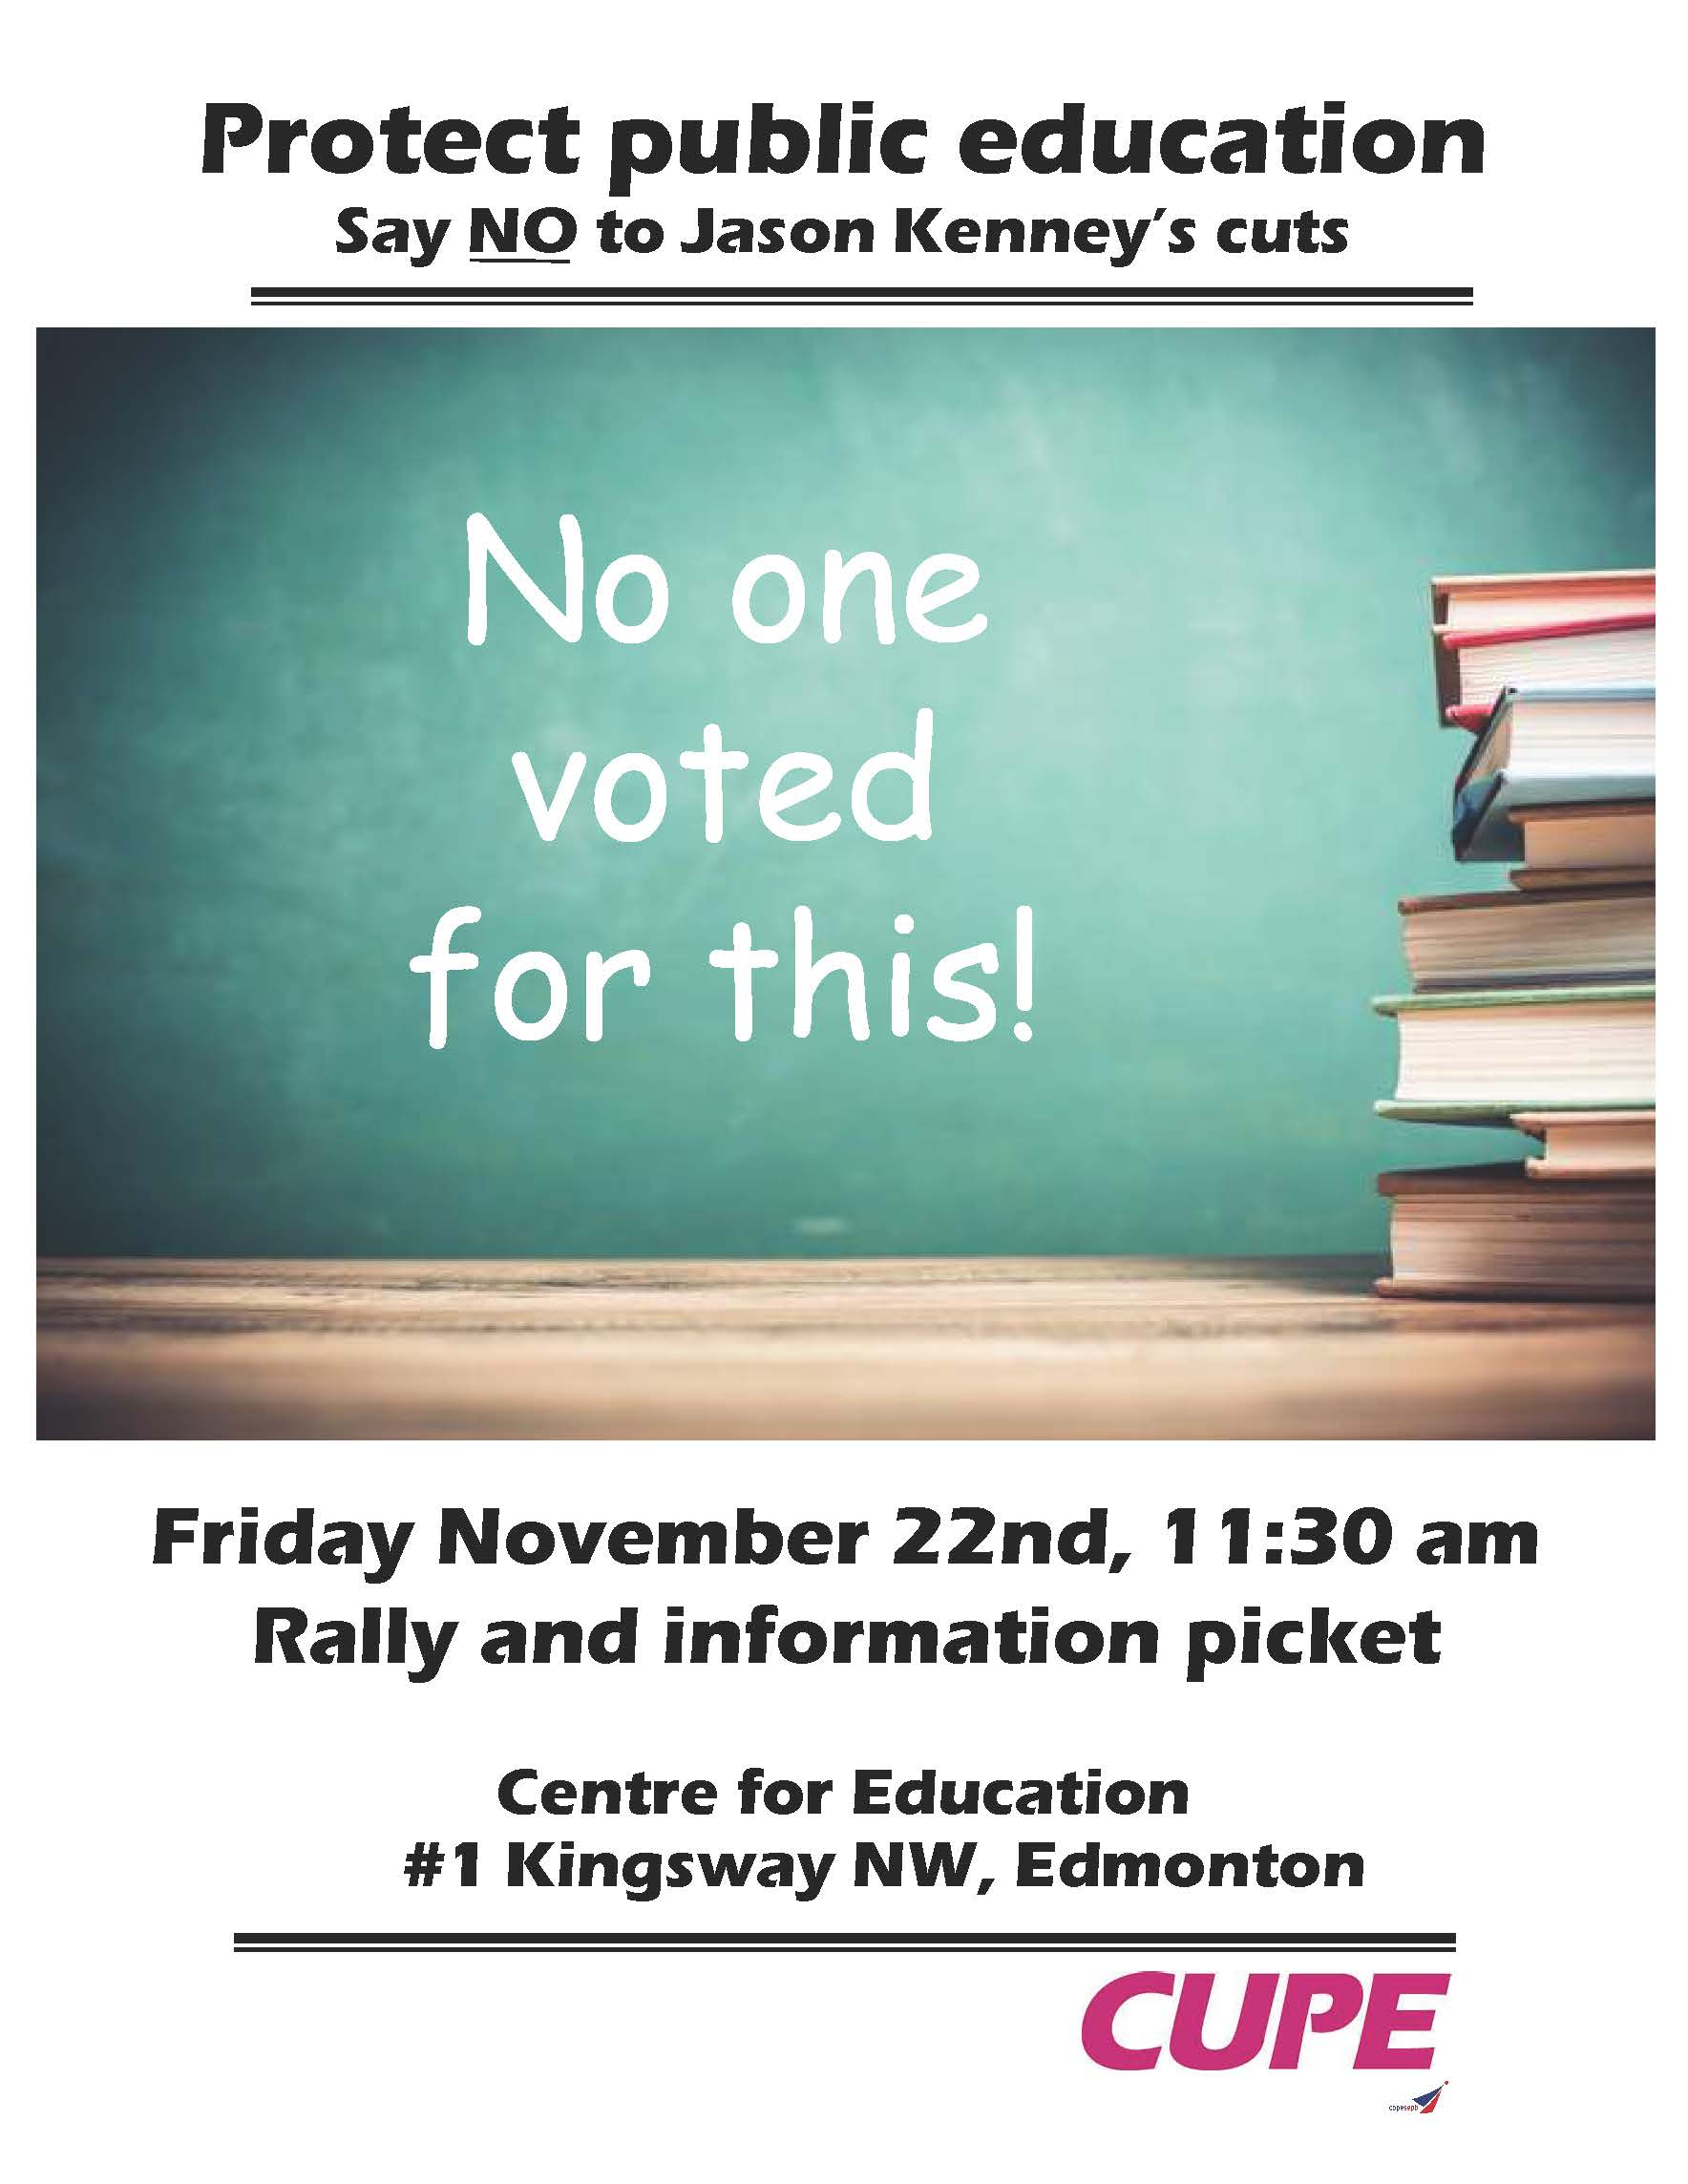 Protect Public Education - Rally @ Centre for Education